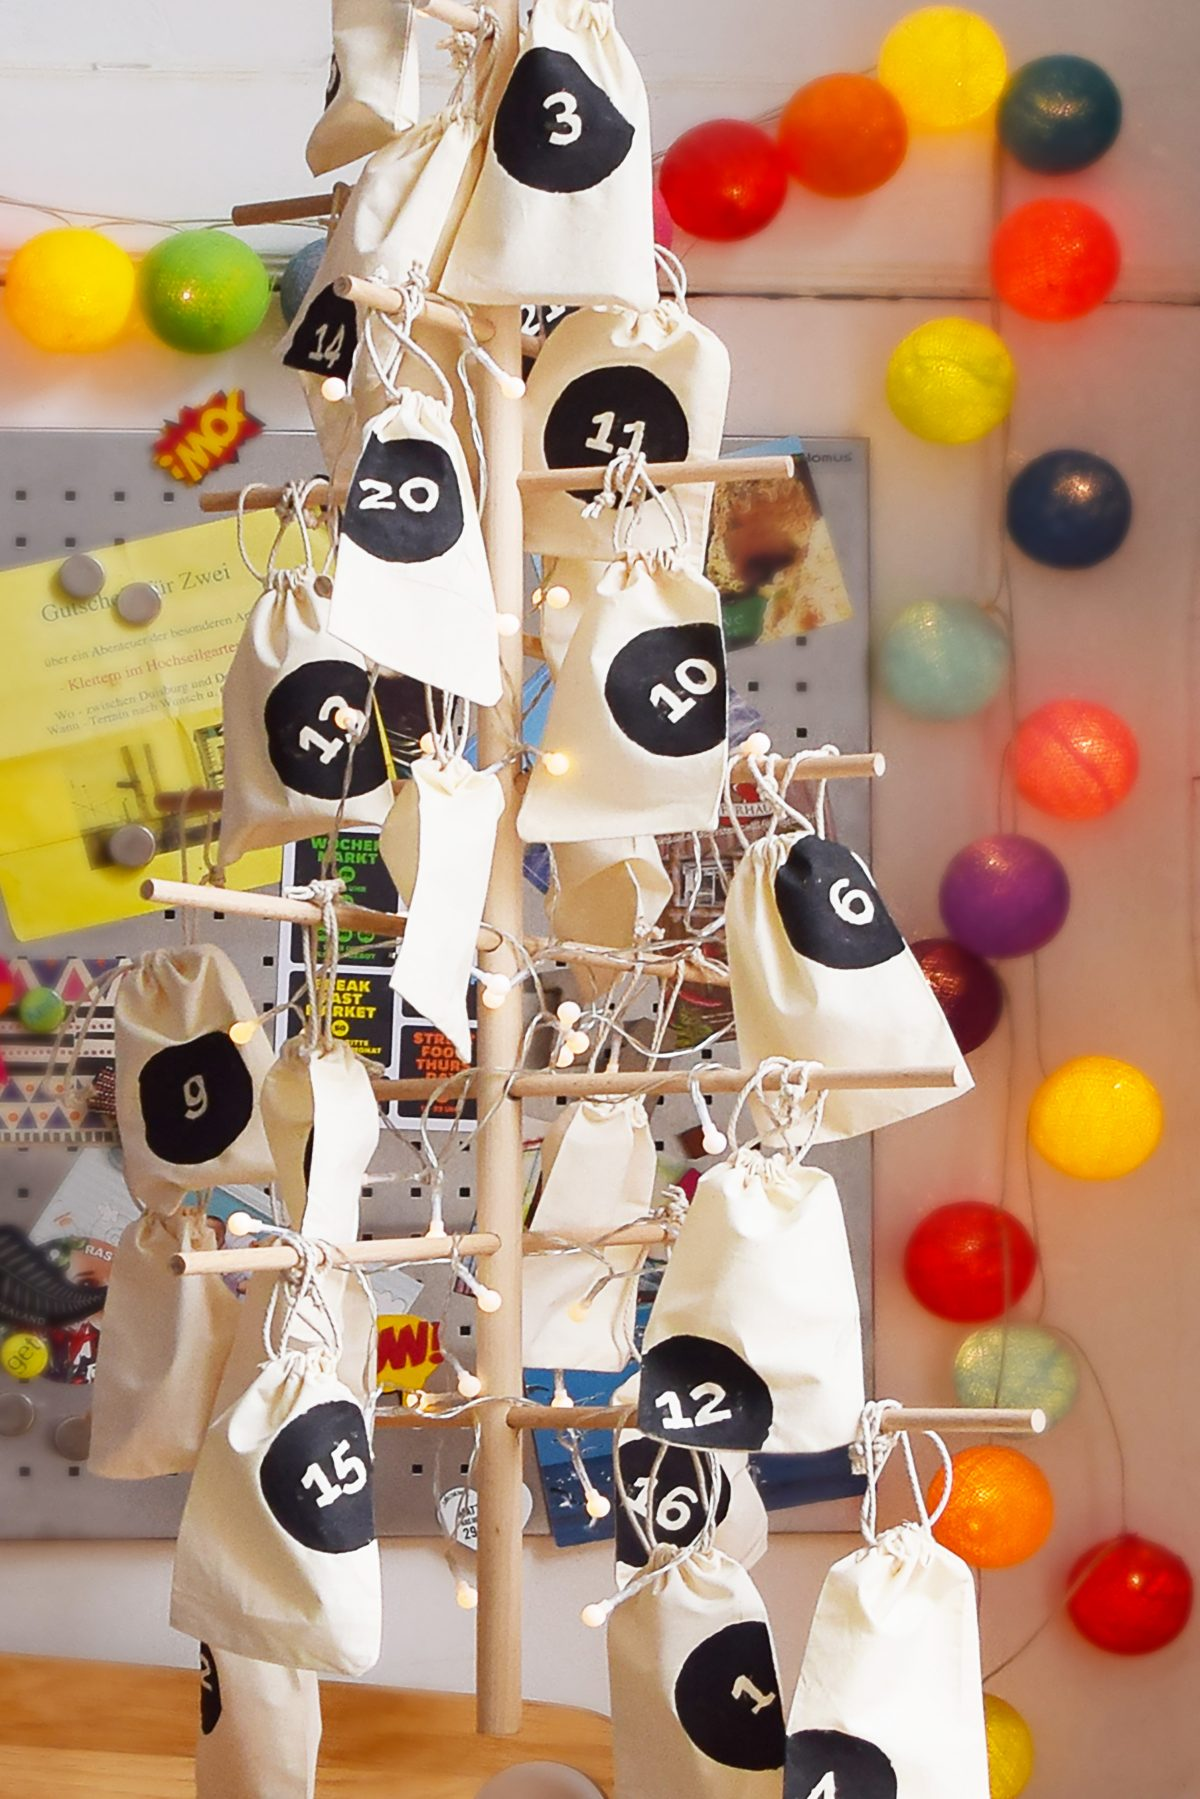 DIY Dowel Tree Advent Calendar | Little House On The Corner